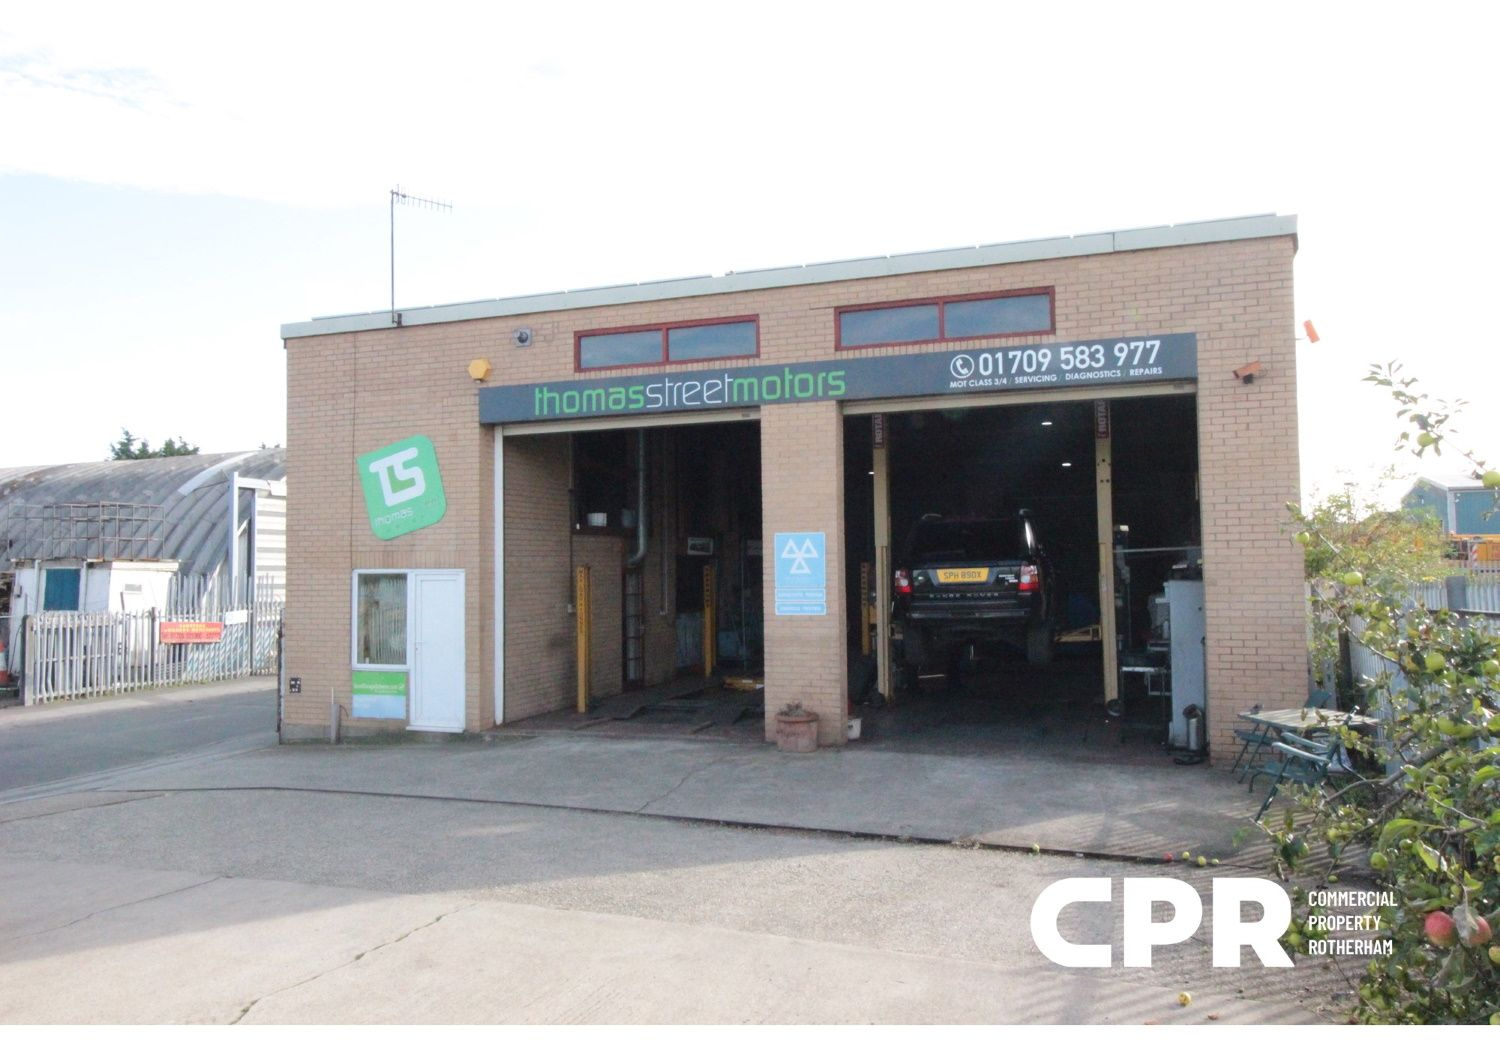 Freehold industrial unit for sale.